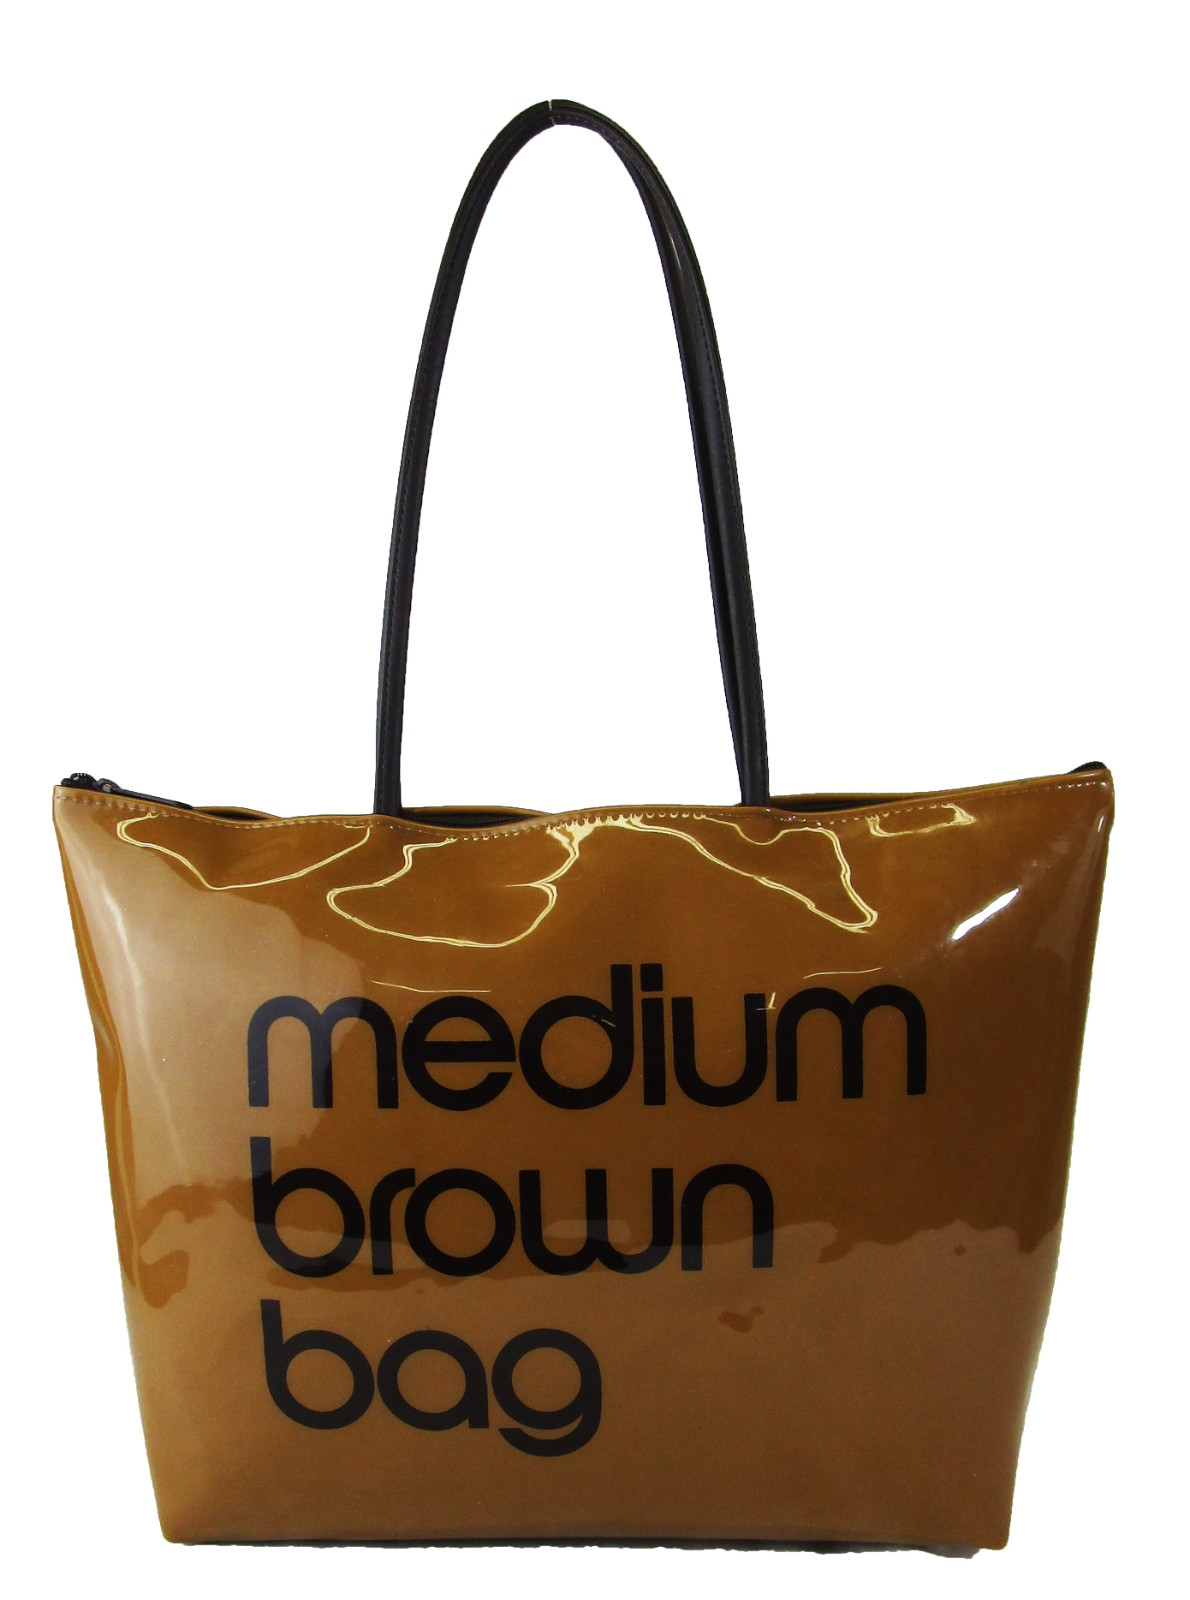 18f8ec7531efa Details about ** BLOOMINGDALES Medium Brown Bag Brown Plastic Zip Top Tote  Bag Msrp $37.00